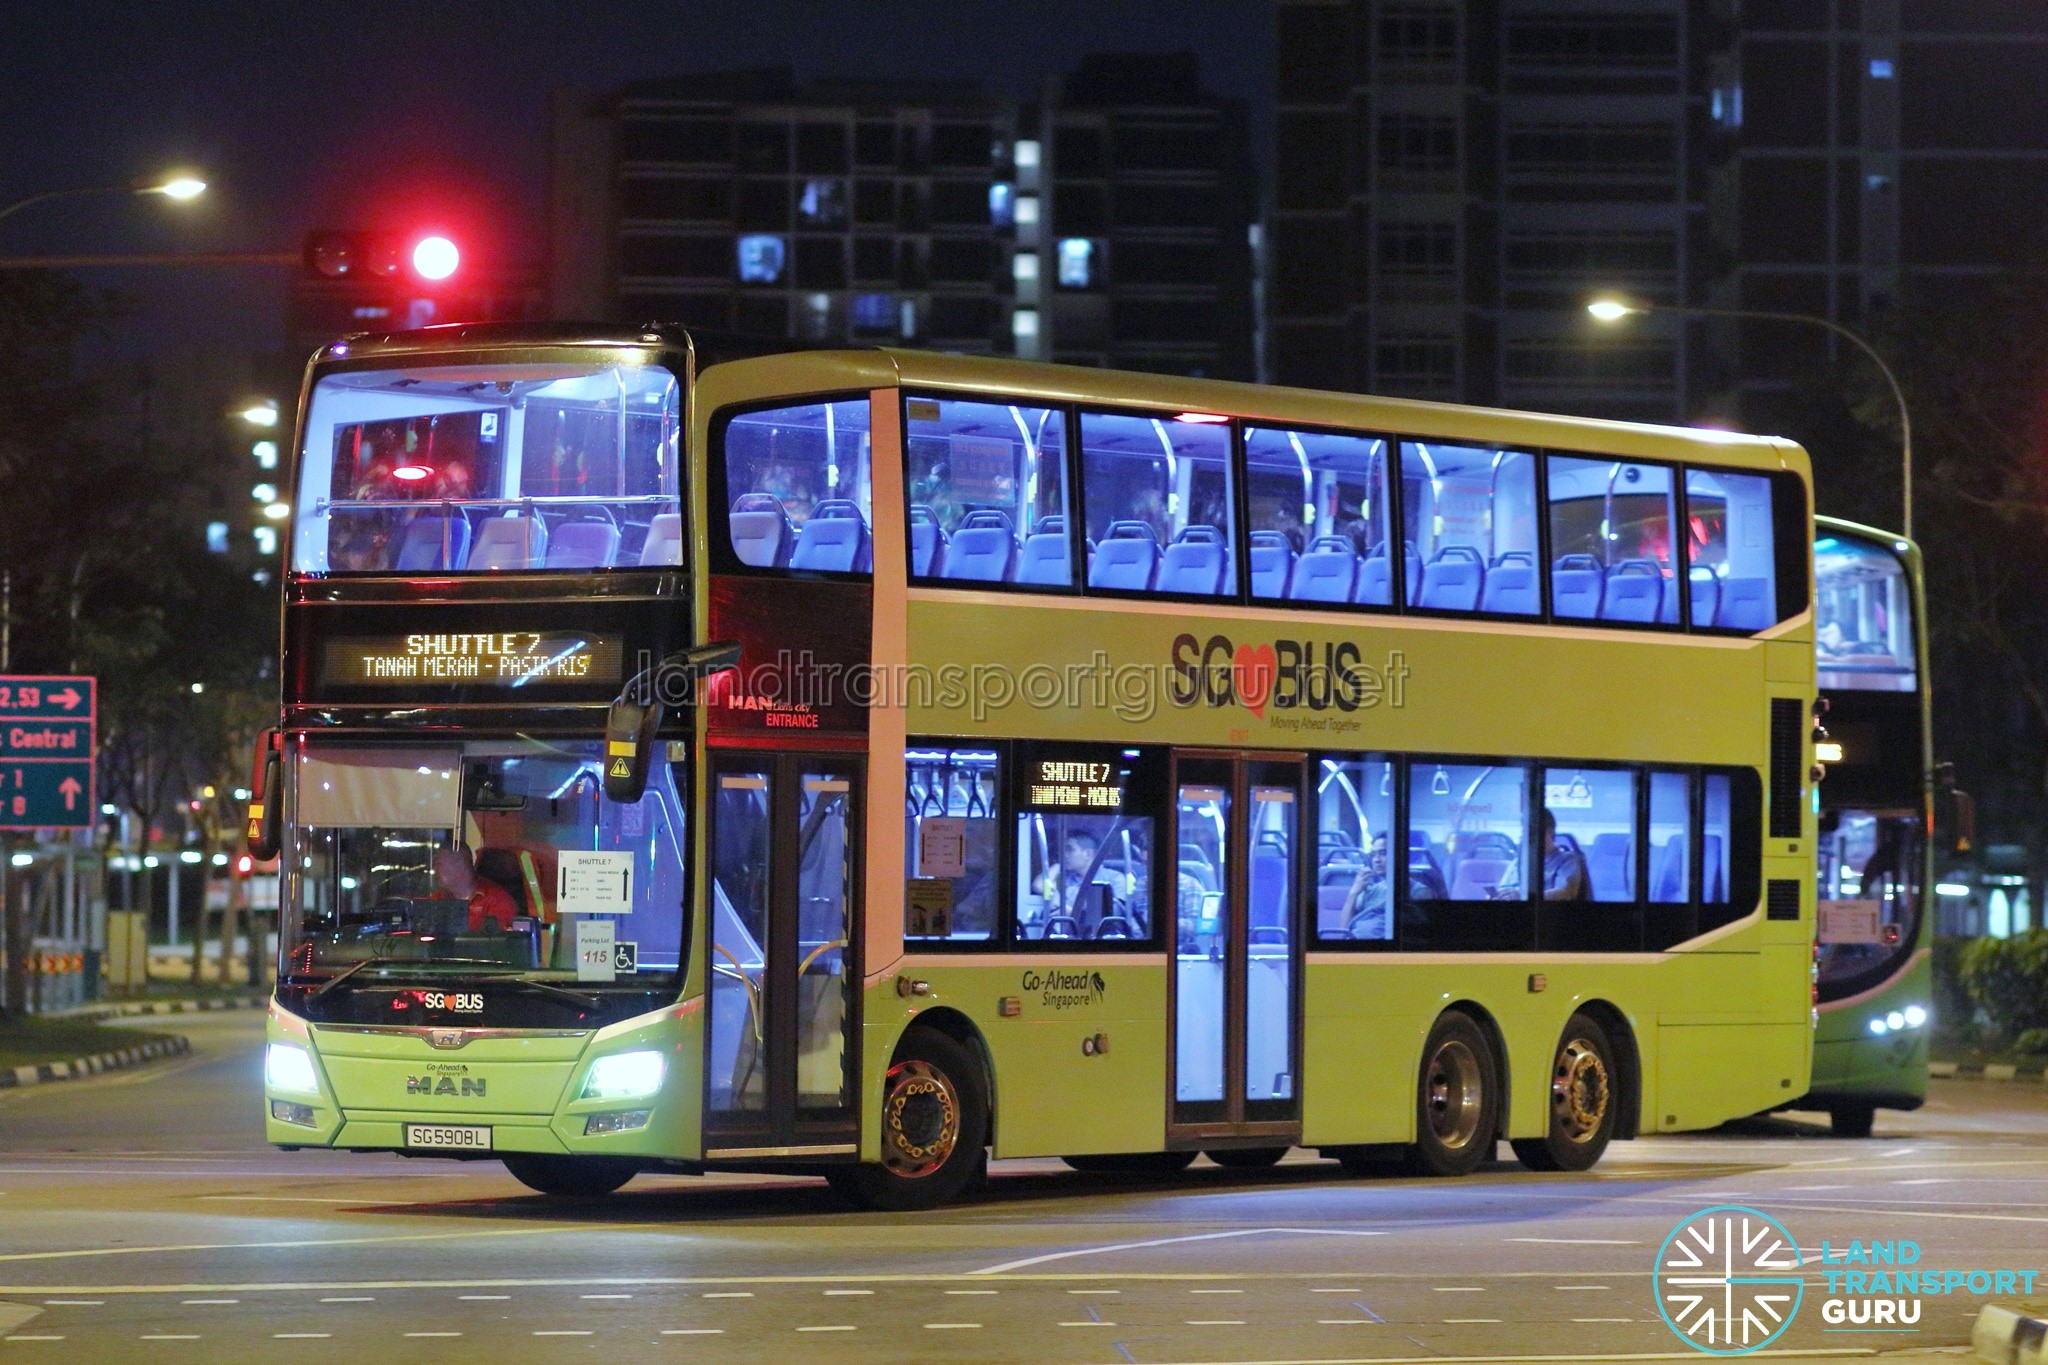 Shuttle 7: Aljunied—Tanah Merah Shuttle Bus Service